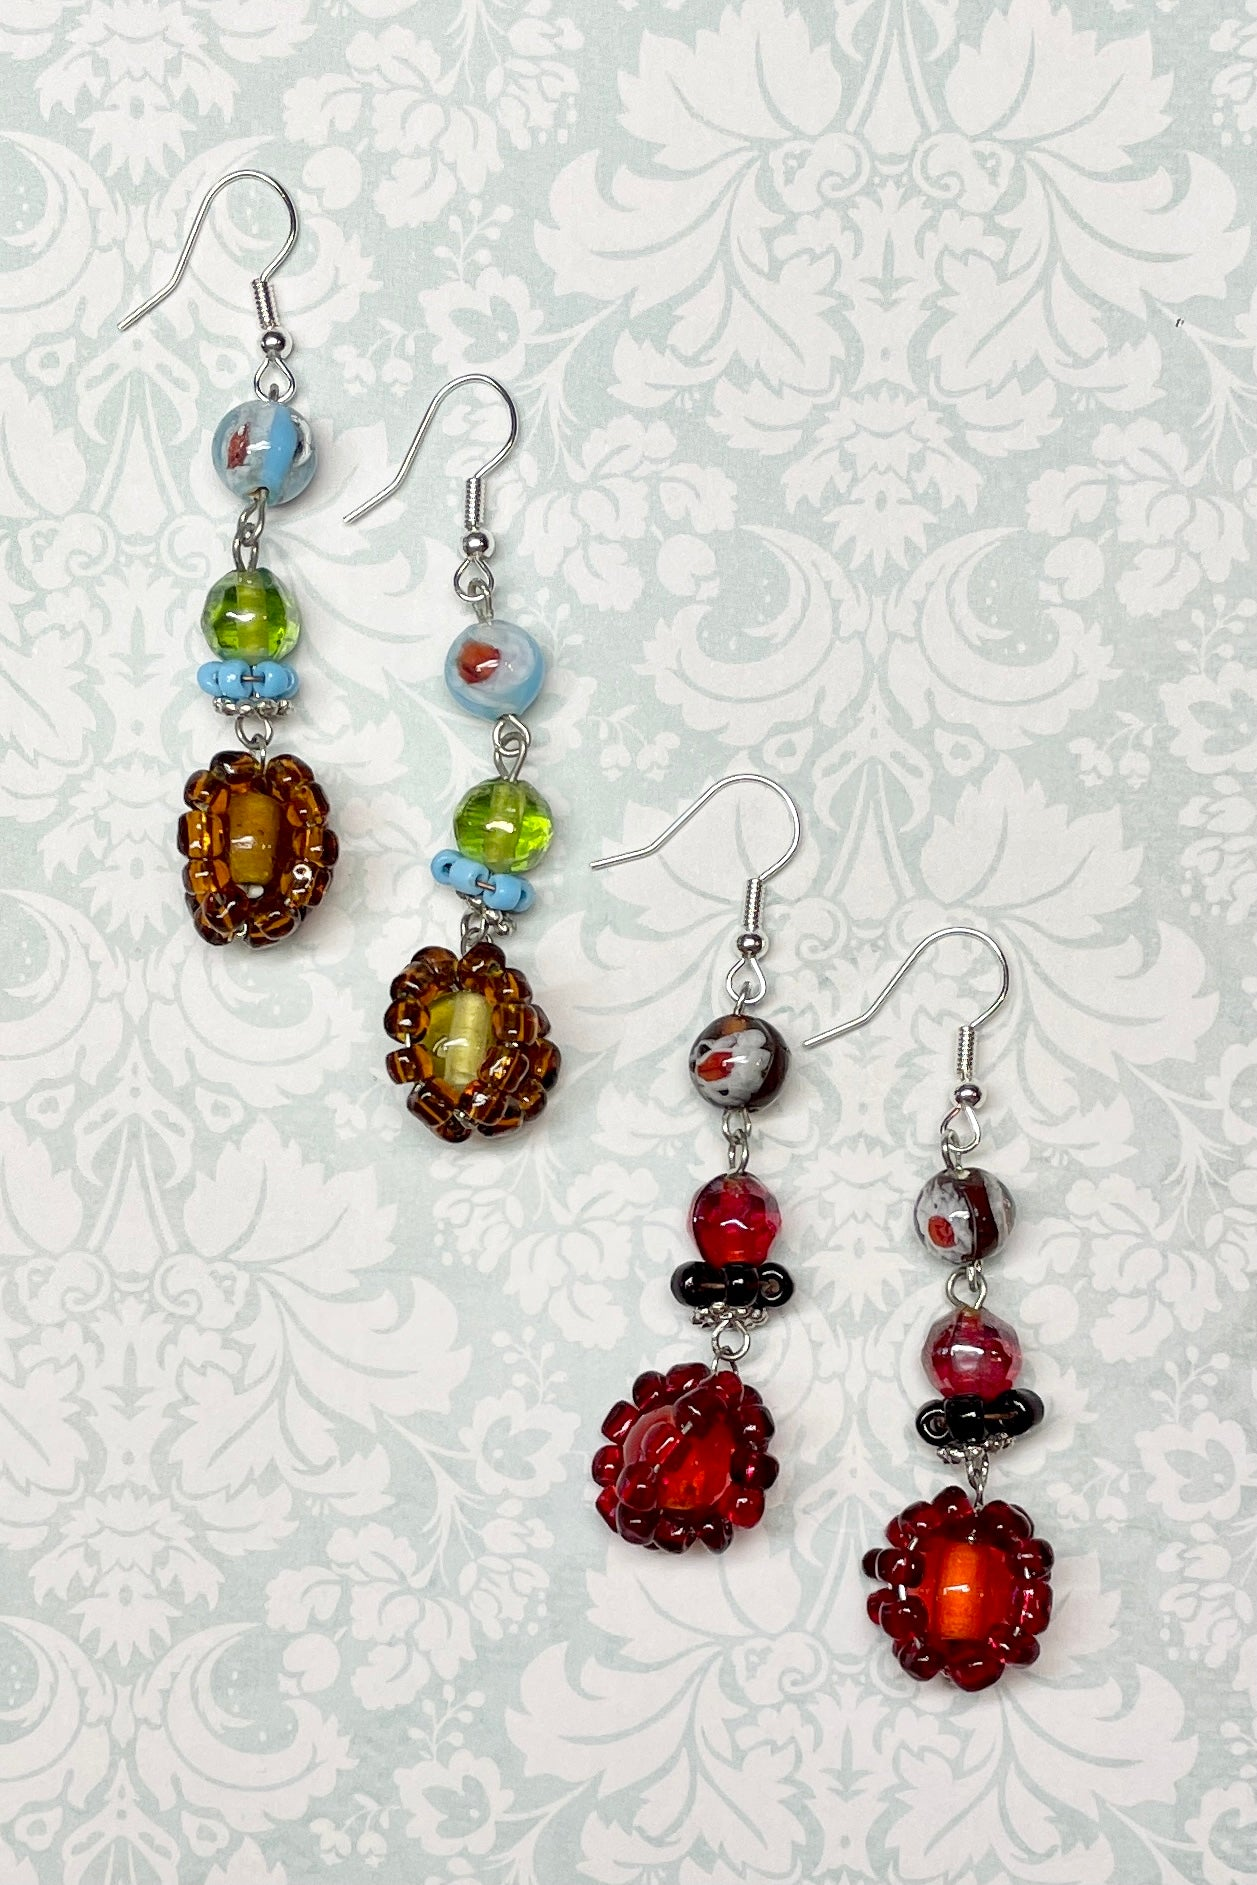 Colourful glass bead earrings in drop style